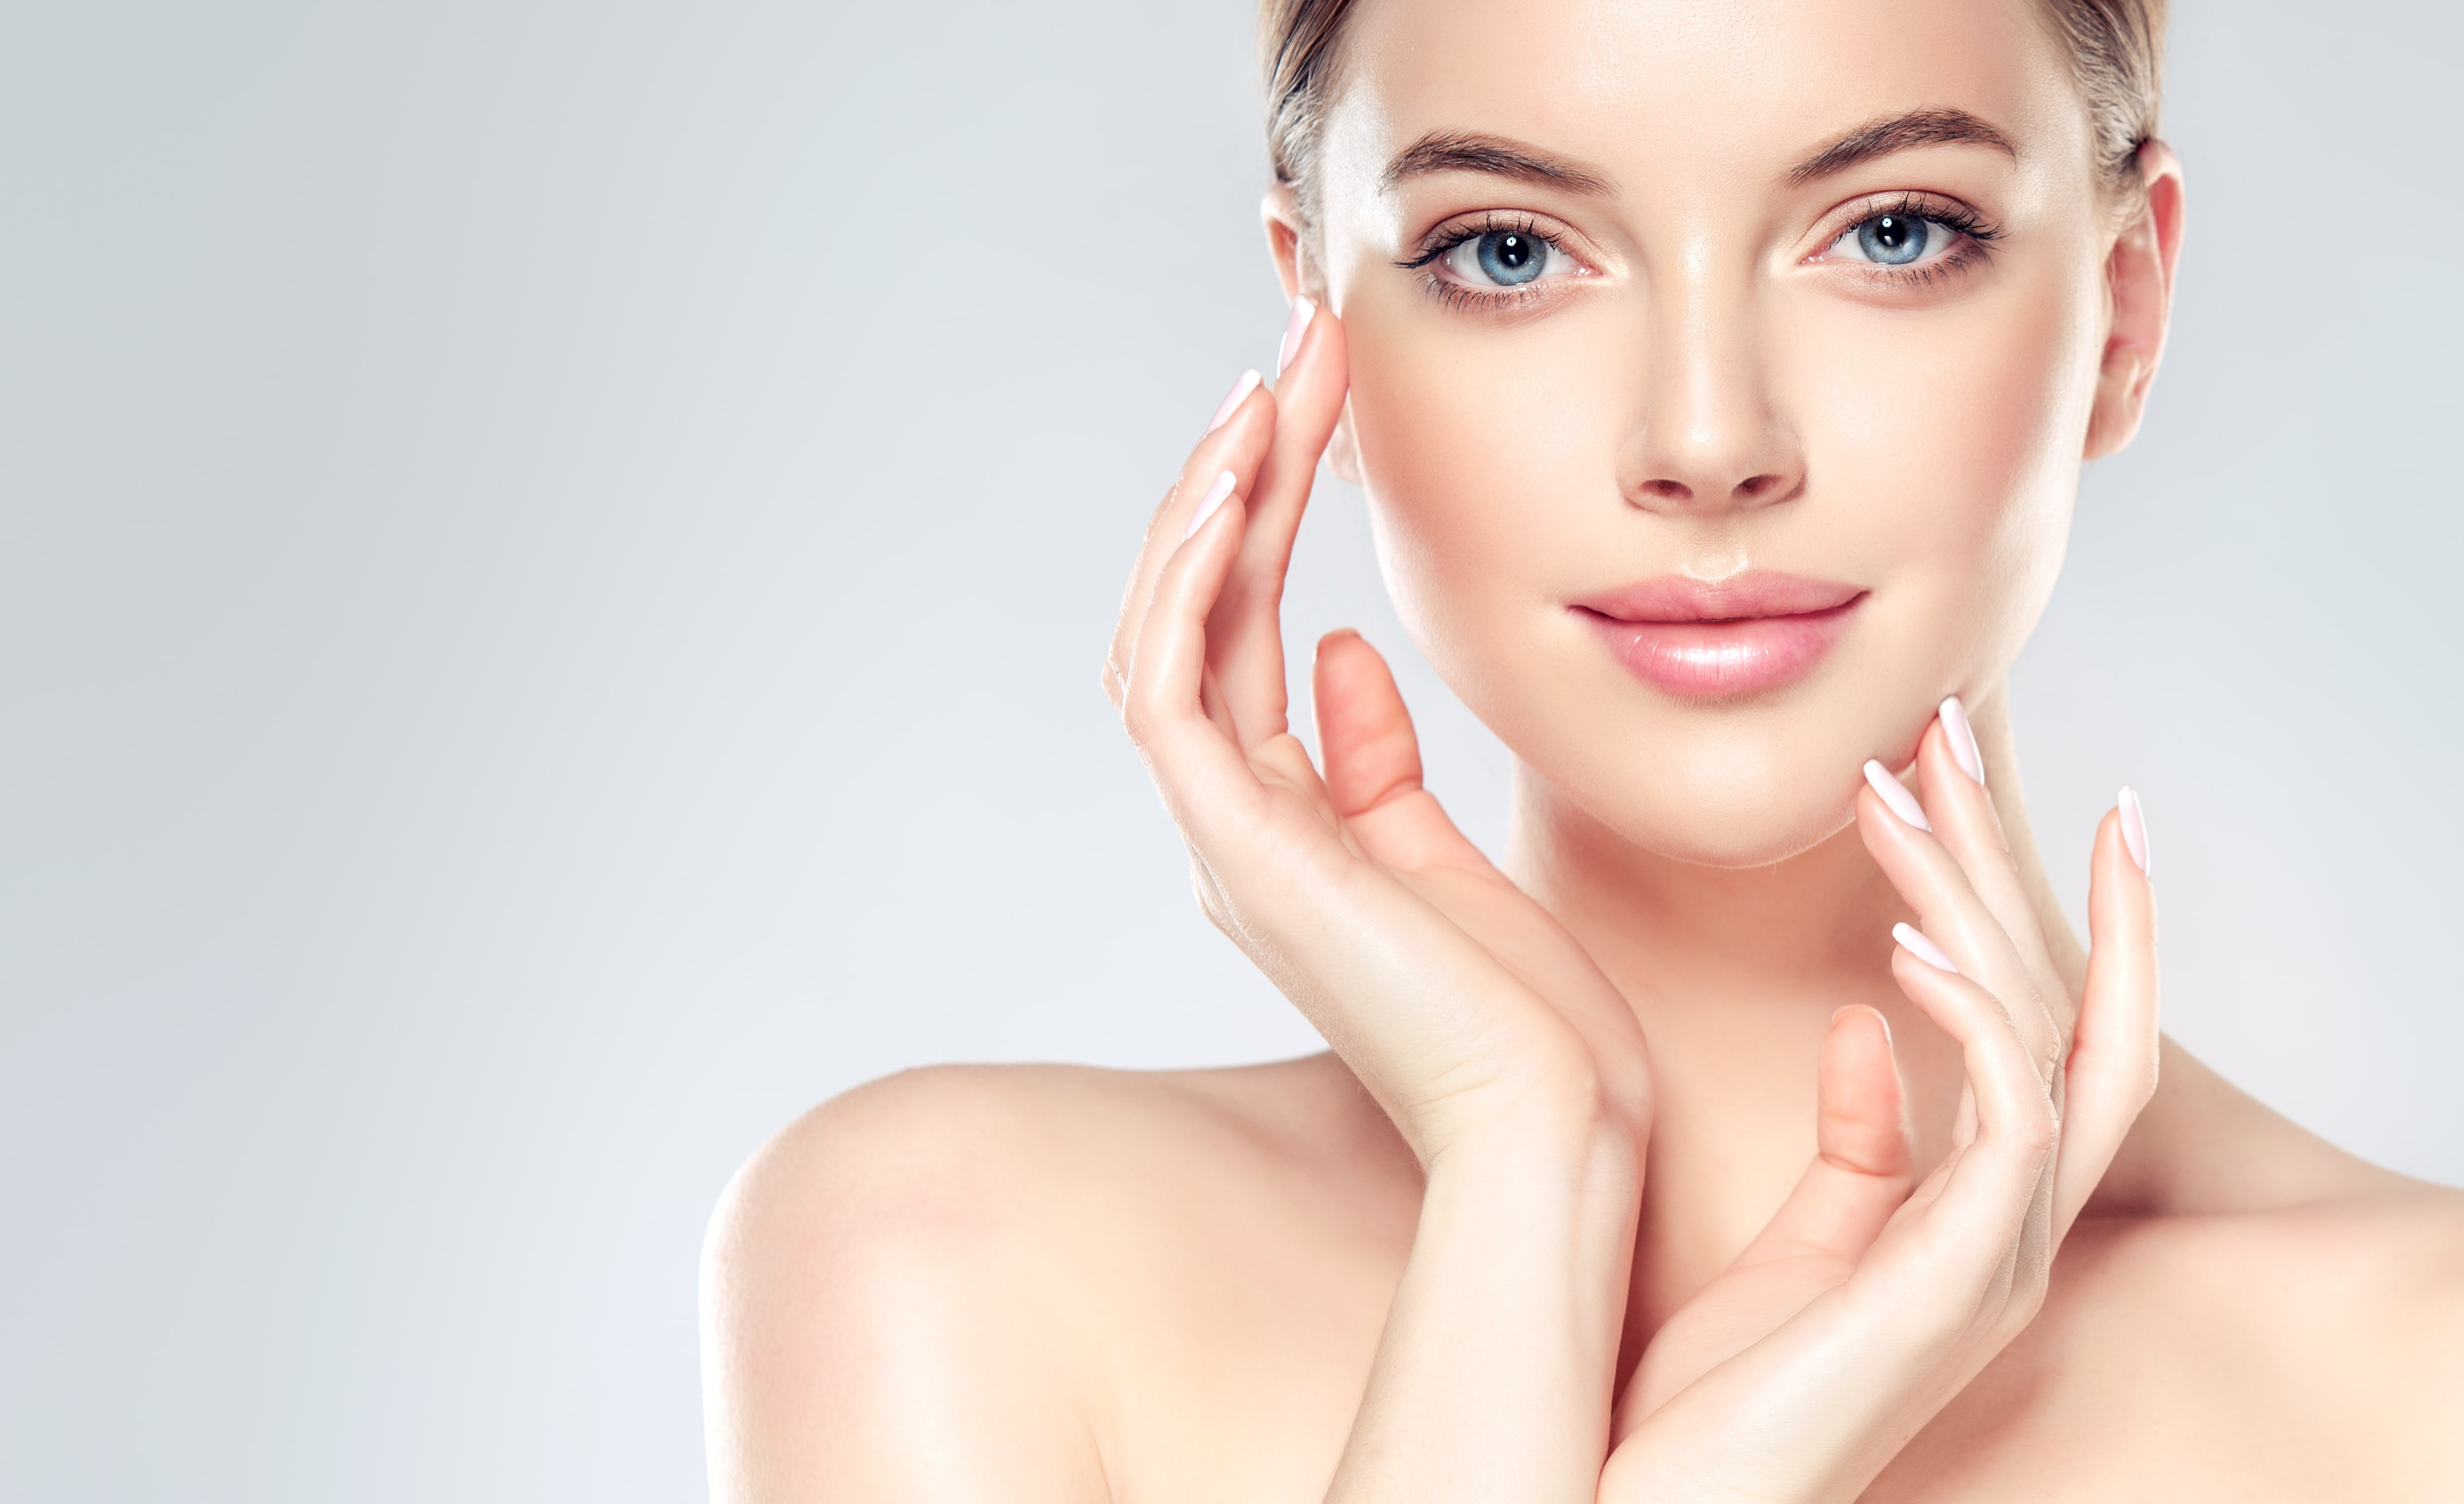 facial-fat-grafting-min Facial Surgery In Scottsdale